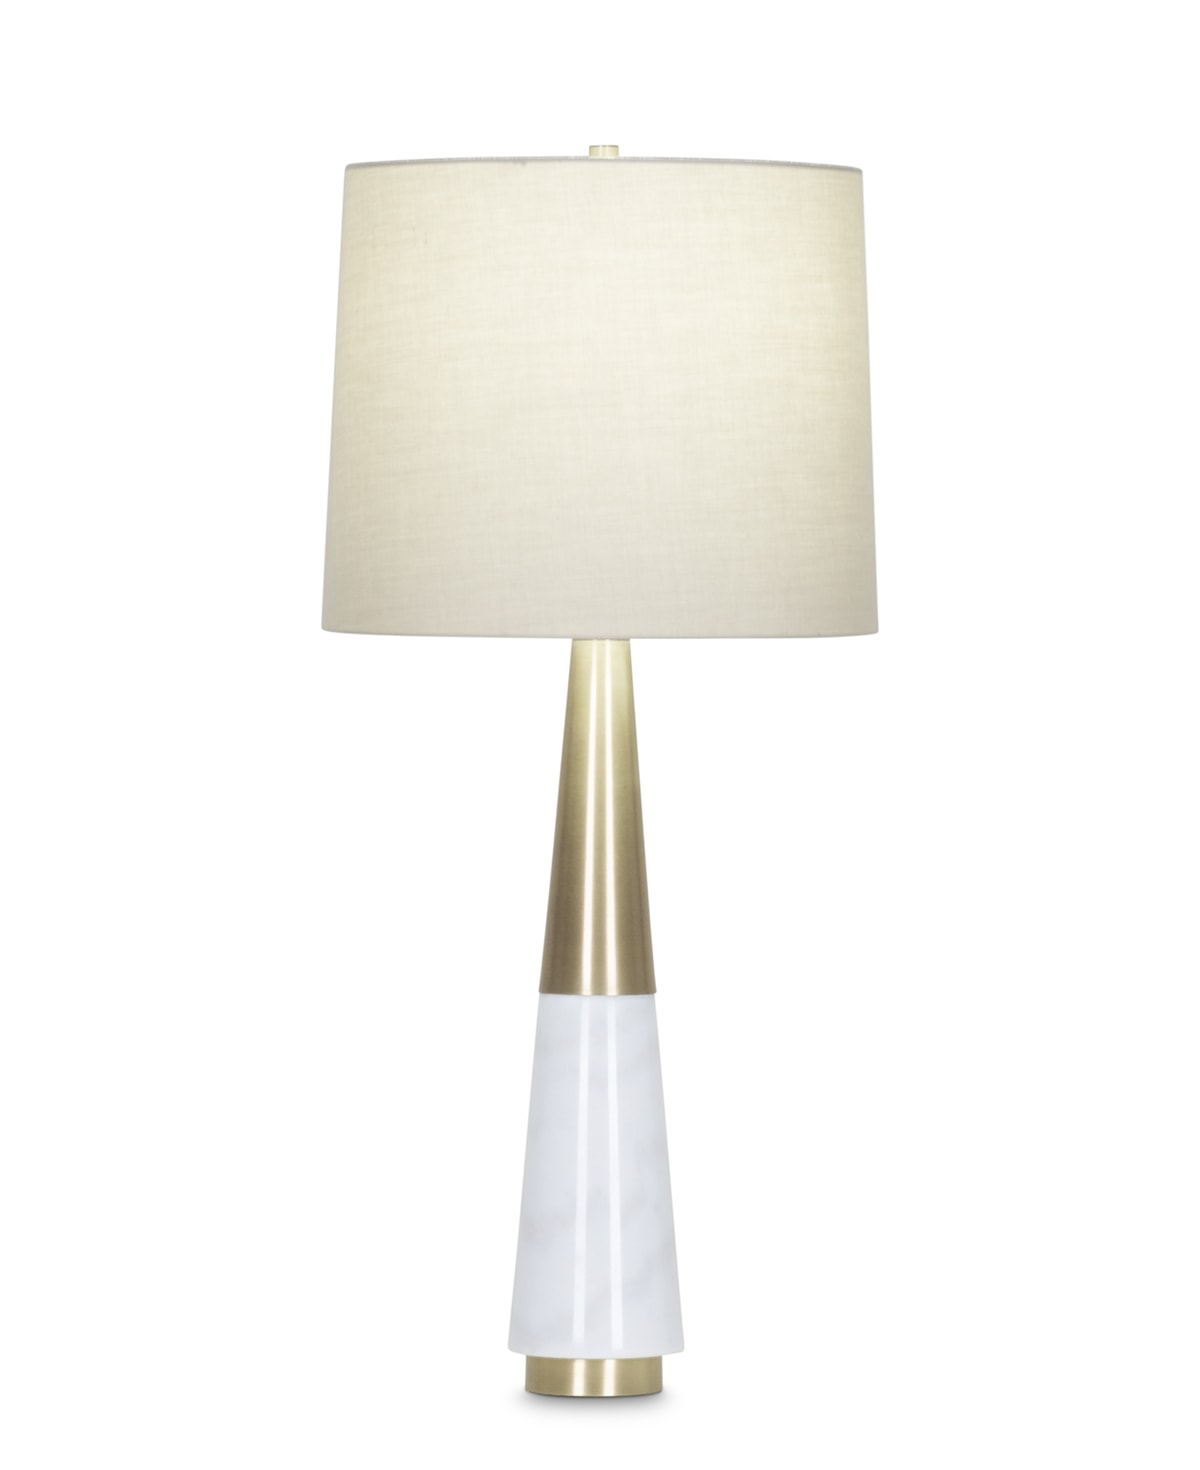 FlowDecor Brody Table Lamp in white marble and metal with antique brass finish and beige cotton tapered drum shade (# 3978)